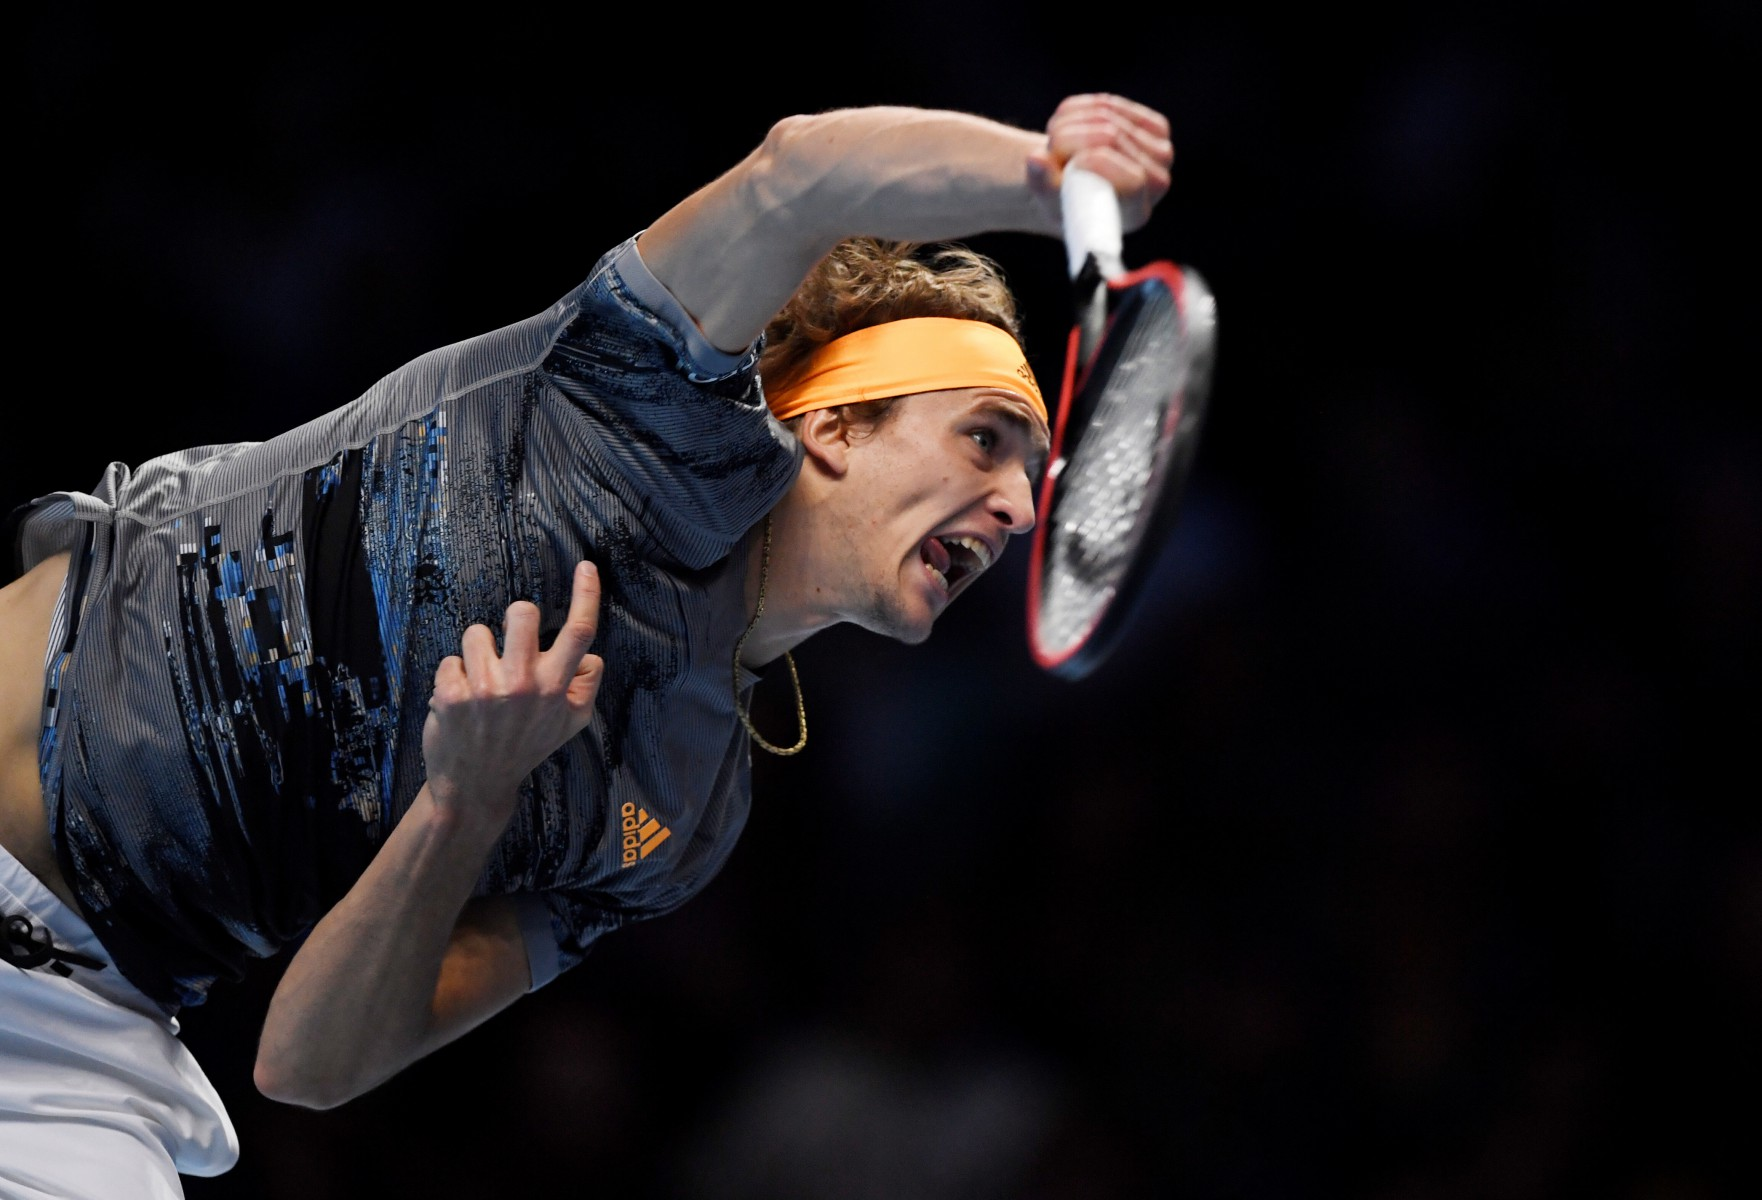 The reigning ATP Finals champion served brilliantly throughout and did not give Nadal a sniff when returning